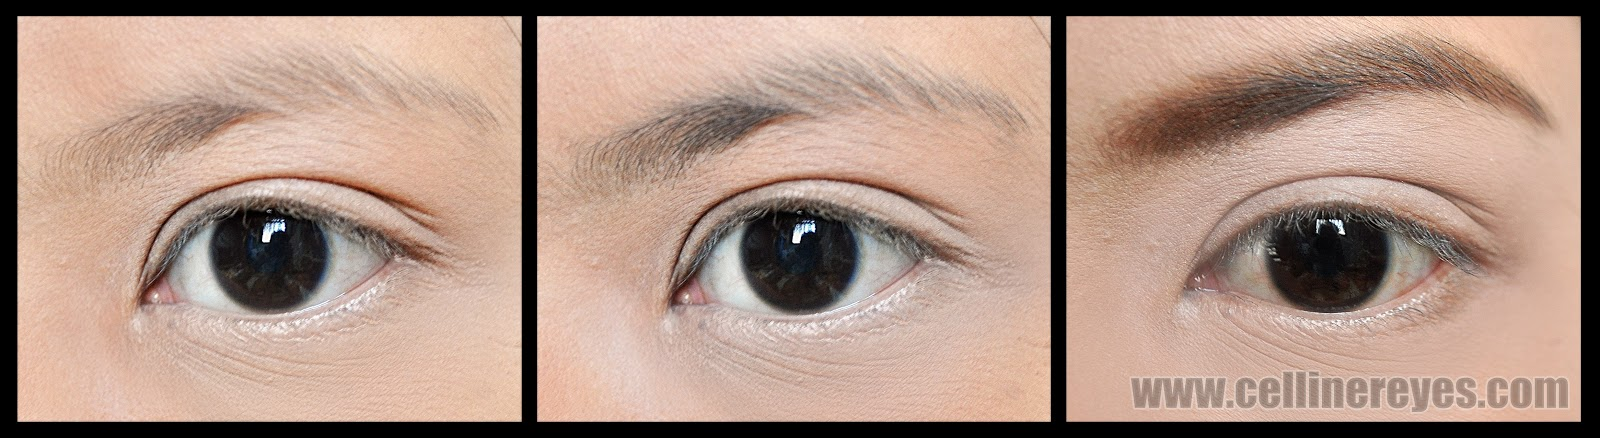 Review Tony Moly 7 Days Tatoo Eyebrow In 01 Product Arena By